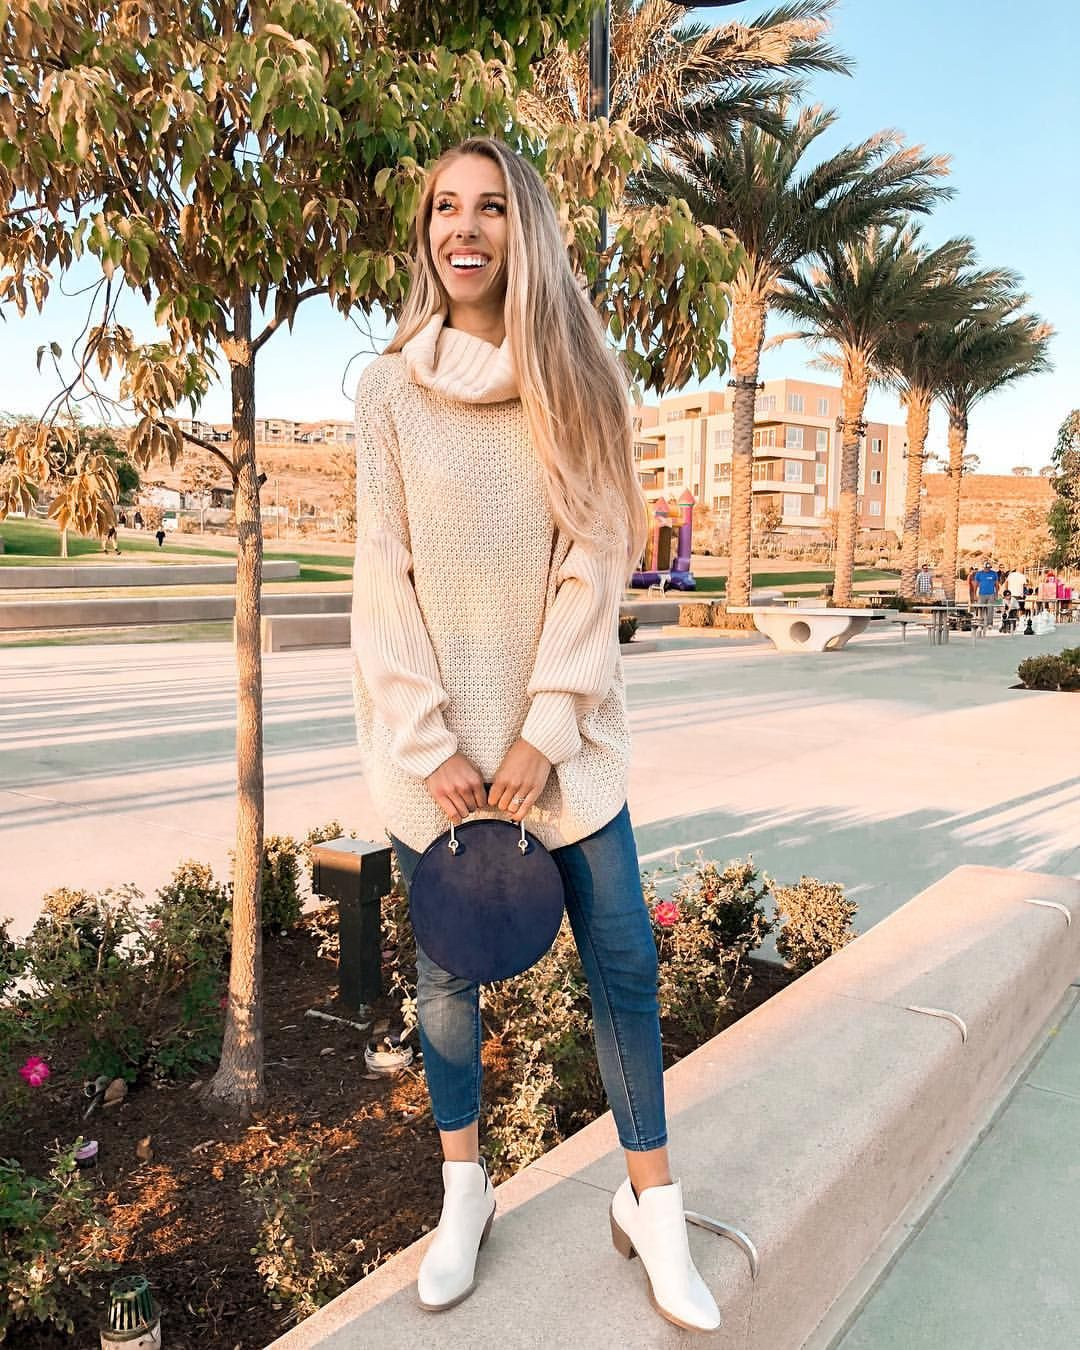 """5c6026a0d57 Jacqueline Lorraine on Instagram  """"We hope everyone had a wonderful  Thanksgiving!❤  sammiedarling93 is looking adorable in our cozy days  sweater!"""